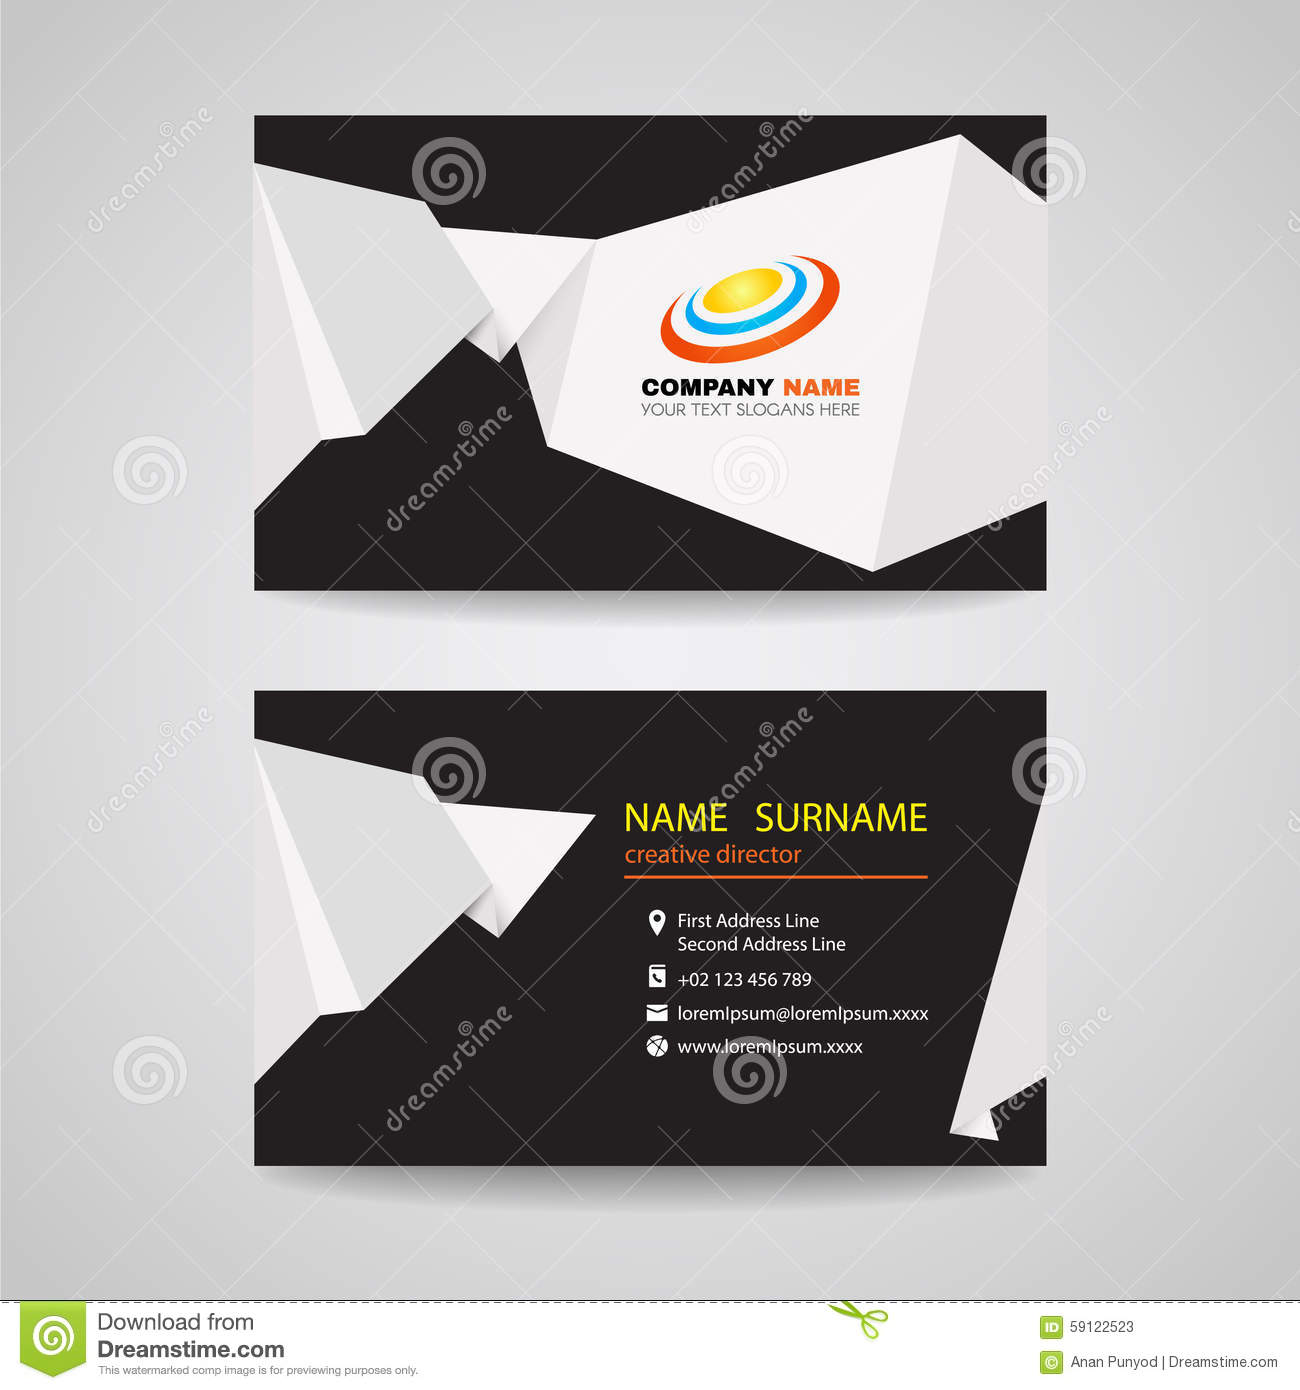 Business card vector design white sharp origami paper on black business card vector design white sharp origami paper on black background jeuxipadfo Gallery